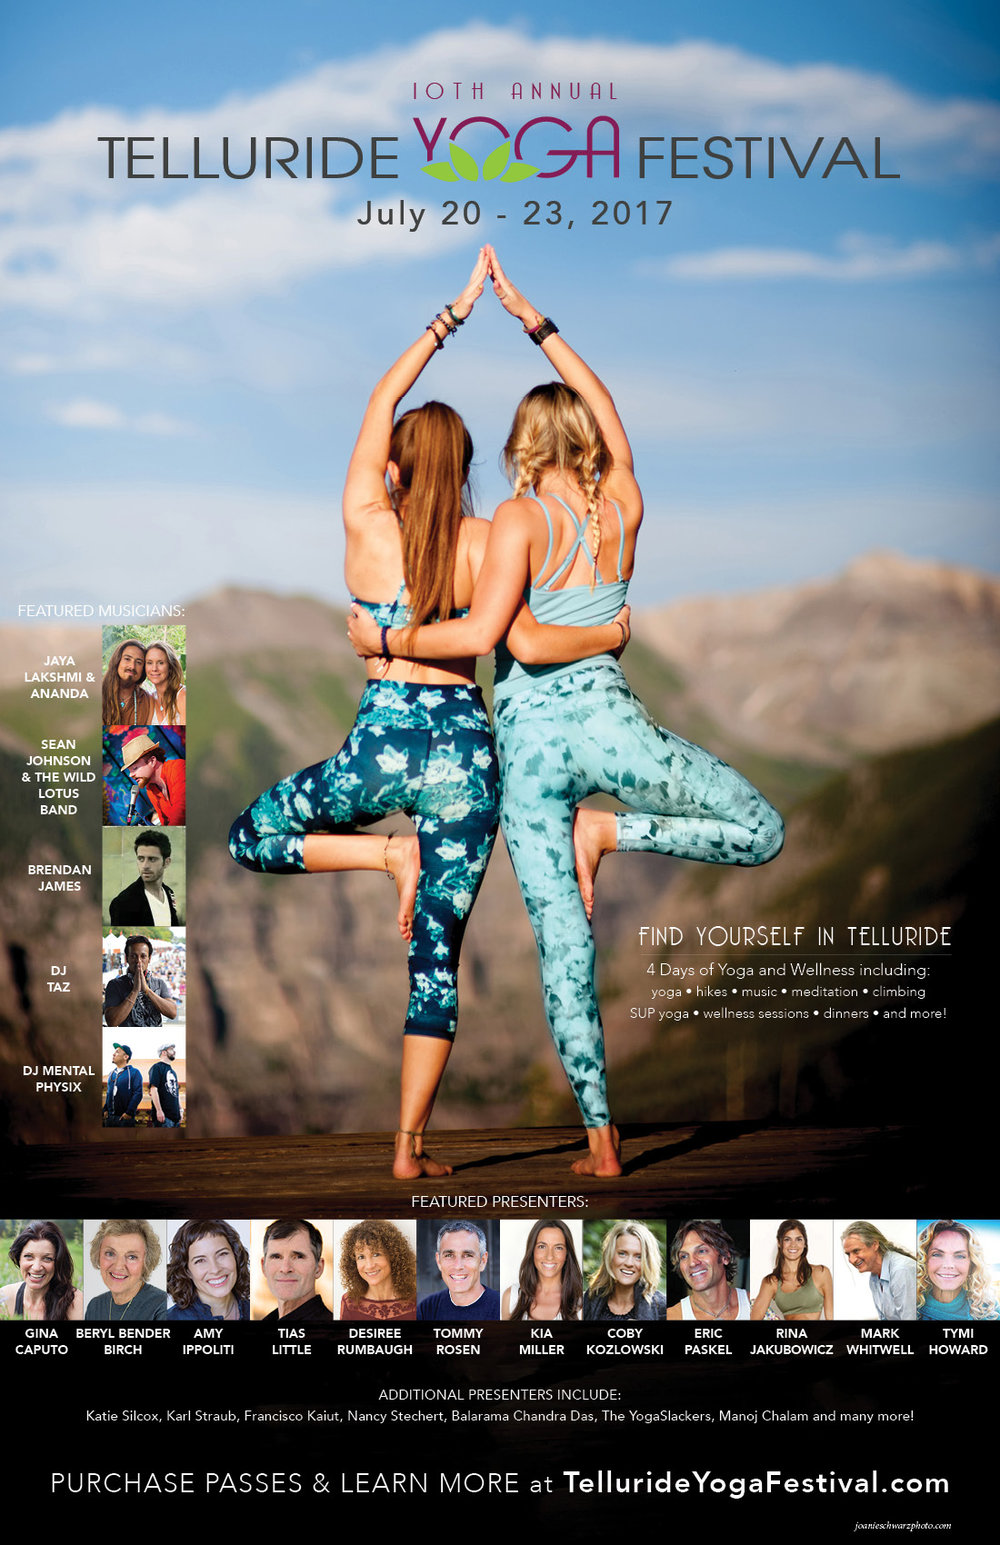 2016 Telluride Yoga Festival Poster Lineup